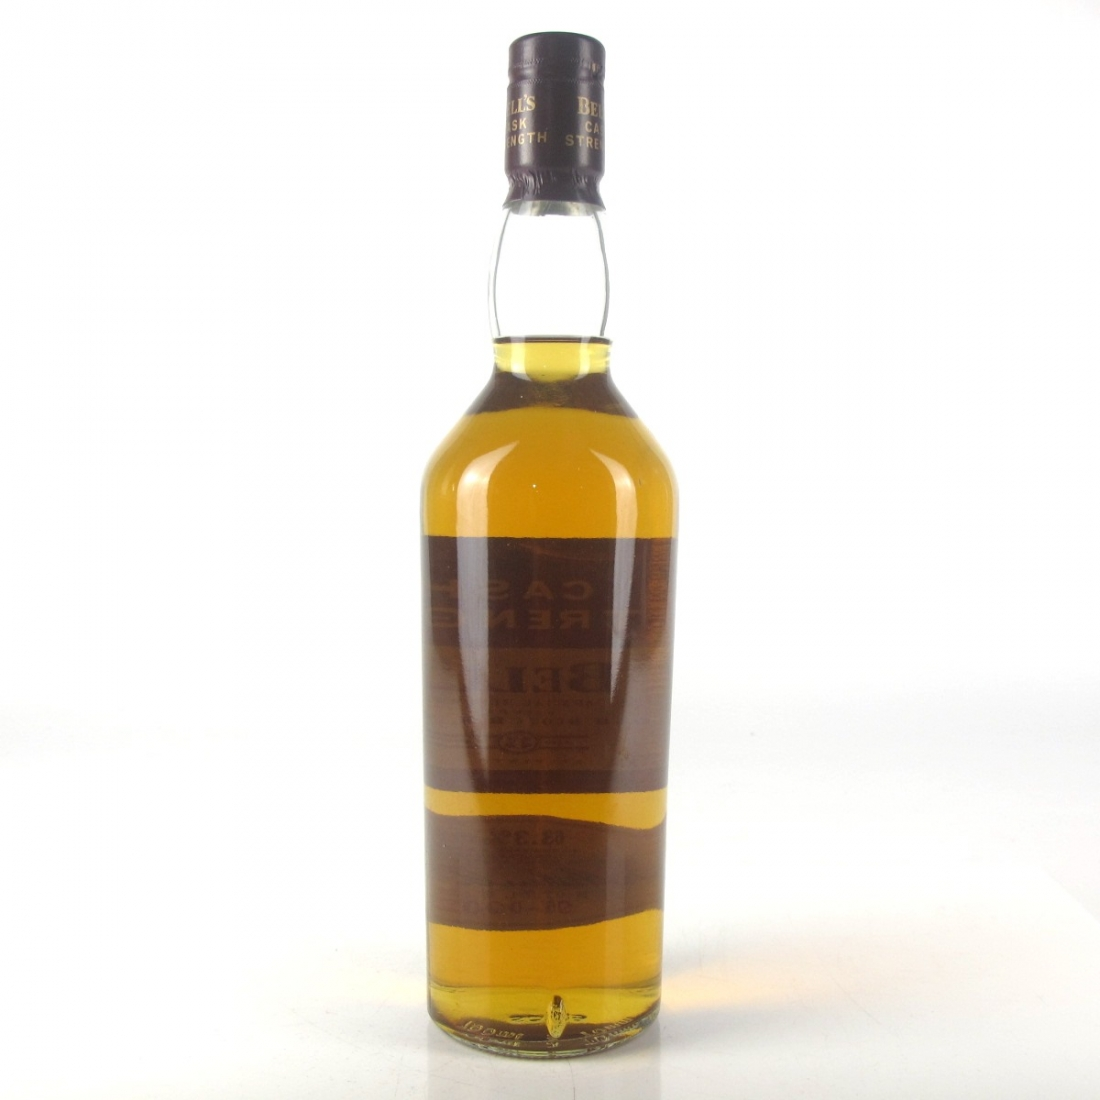 Bell's 8 Year Old Cask Strength